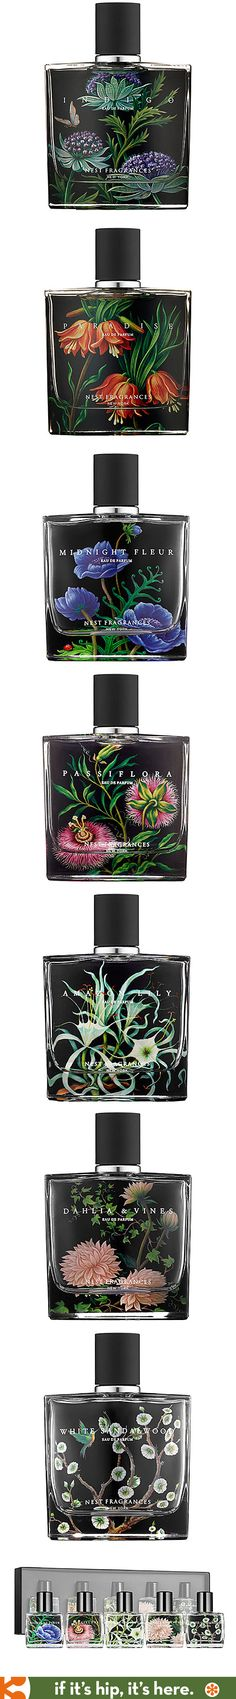 The NEST parfum collection for Sephora is some of the prettiest bottle designs I've ever seen.